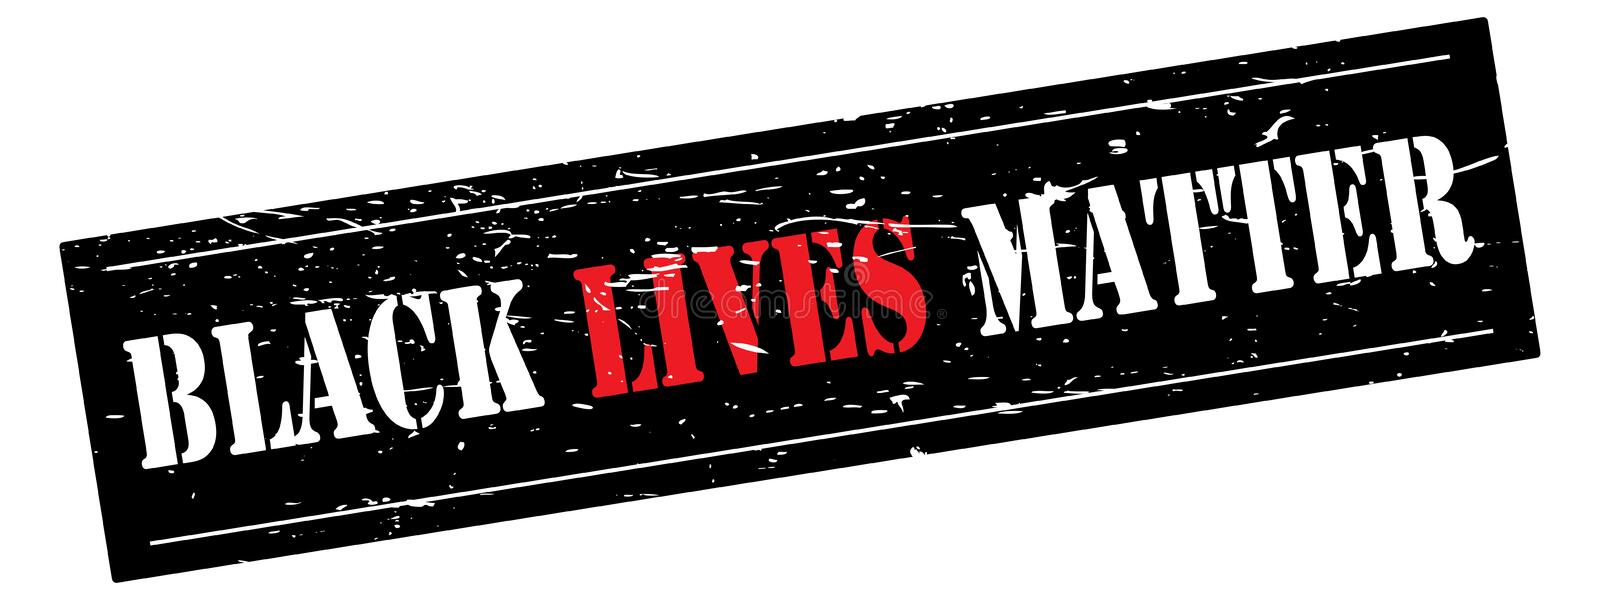 Black Lives Matter banner. Illustration of the text BLACK LIVES MATTER in white and red on a grunge black background, isolated on a white background